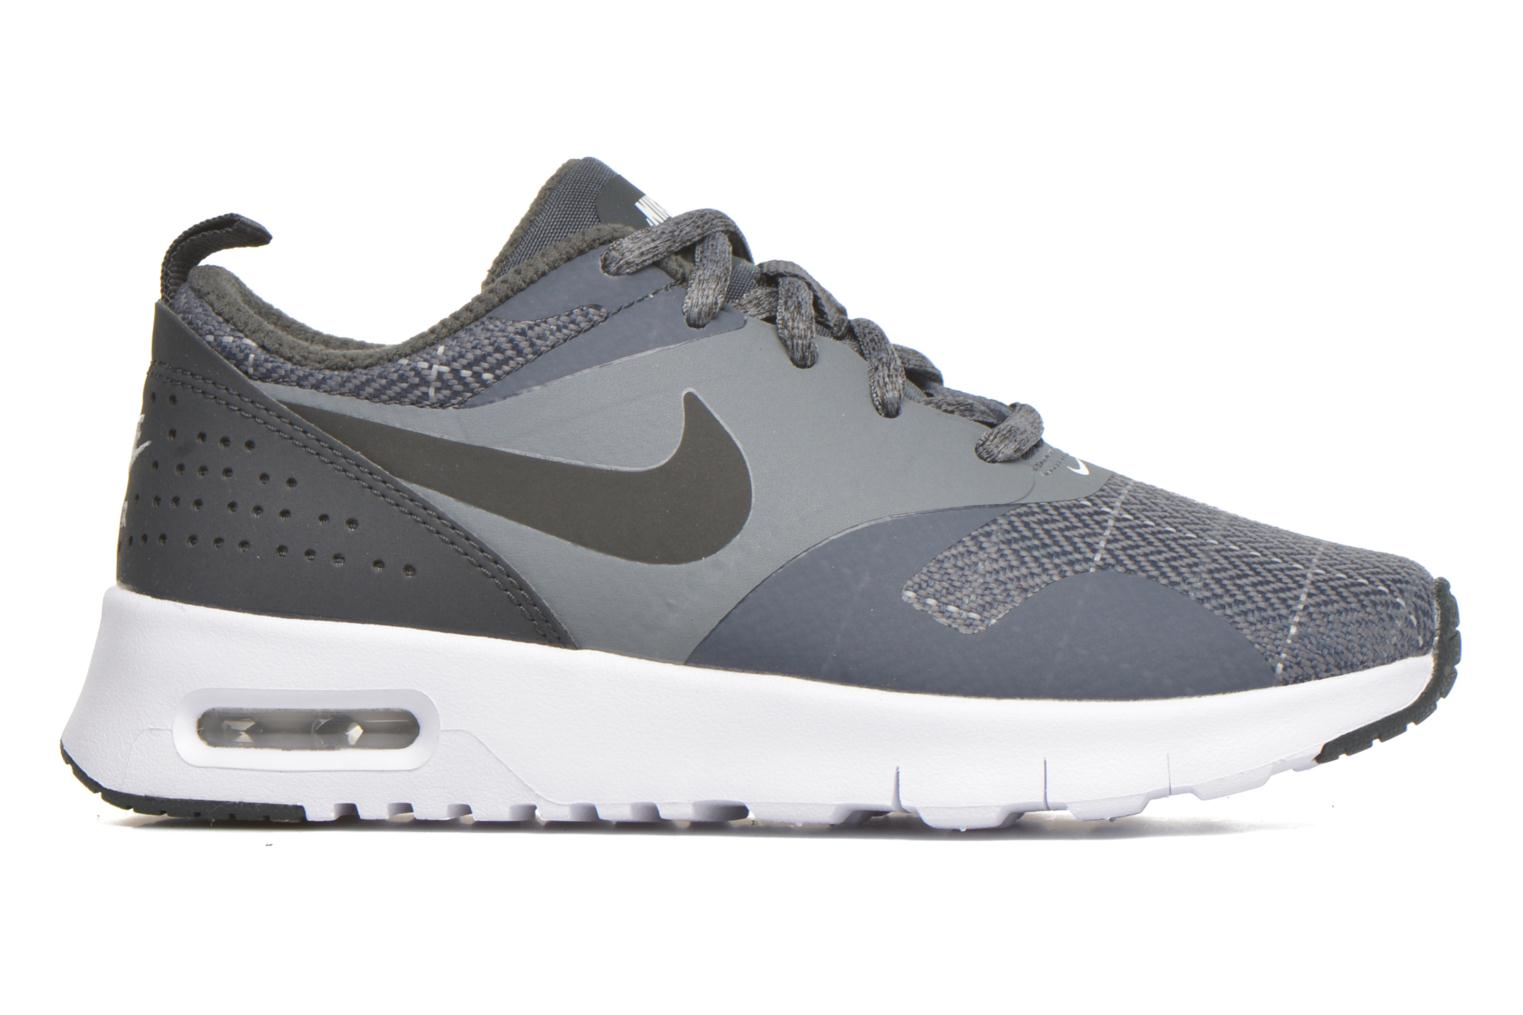 Nike Air Max Tavas Se (Ps) Cool Grey/Anthracite-White